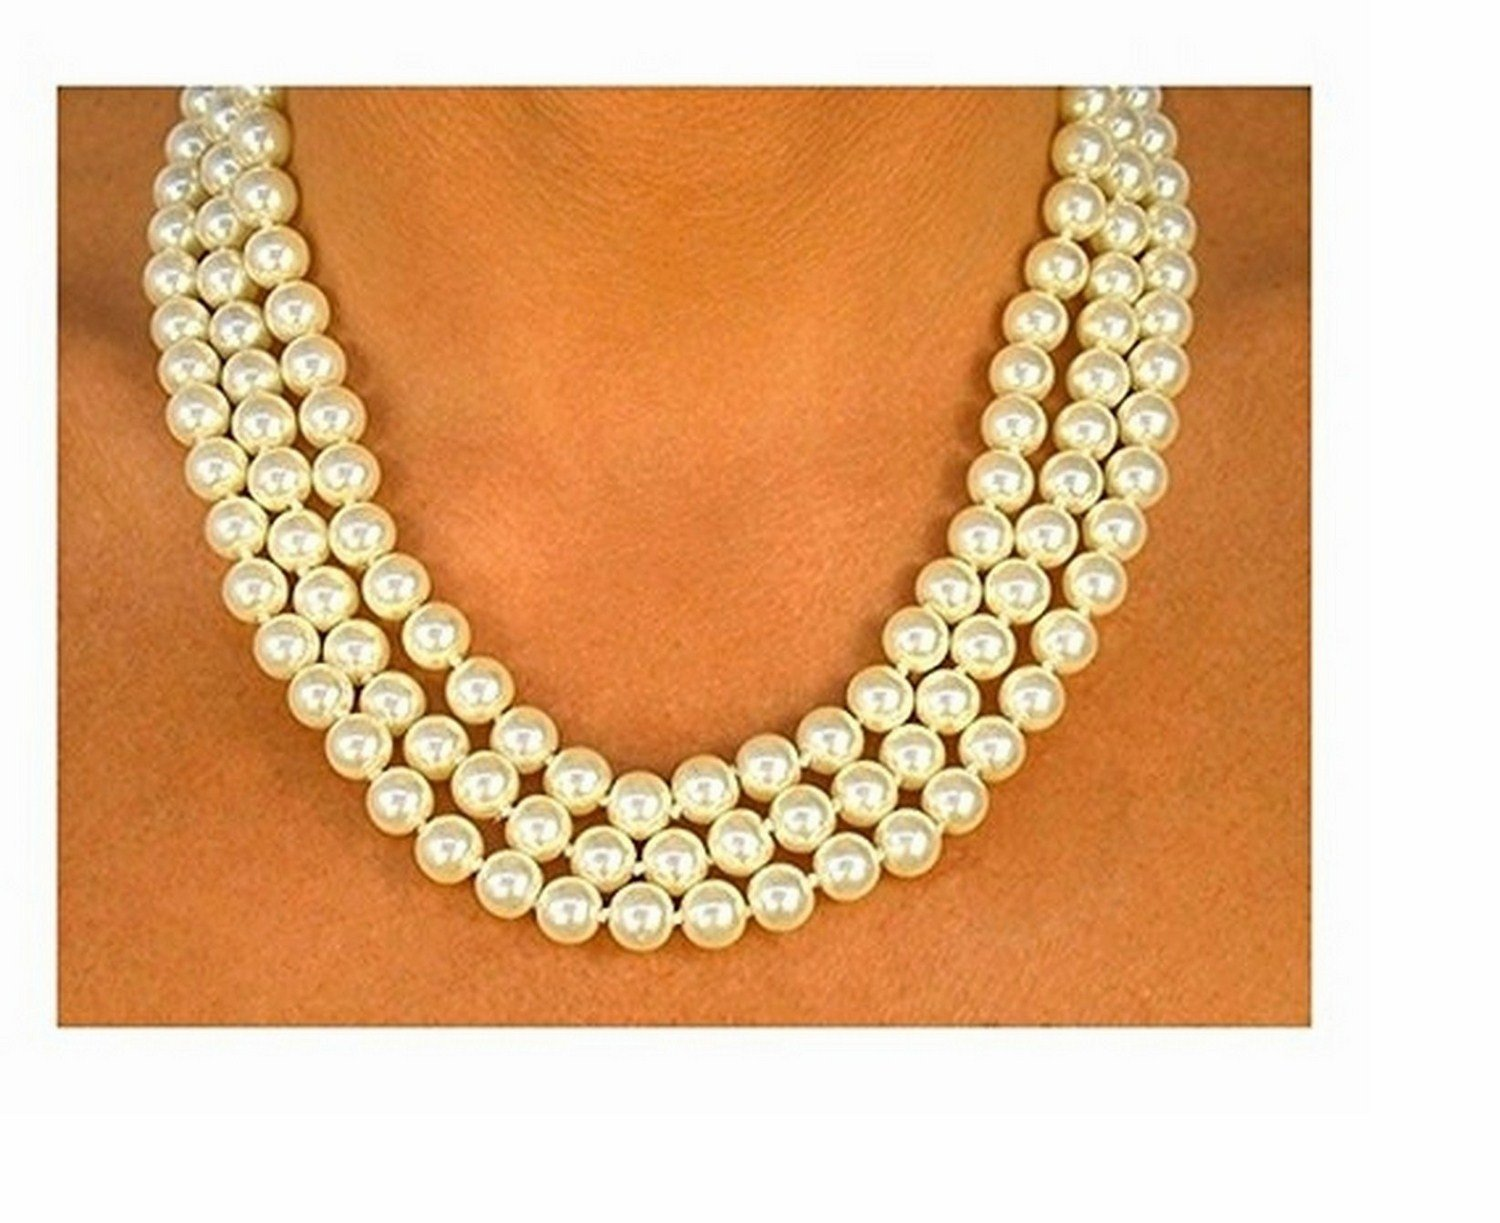 Cream Color Triple- Strand 8mm Faux Pearl Necklace by Lonestar Jewelry